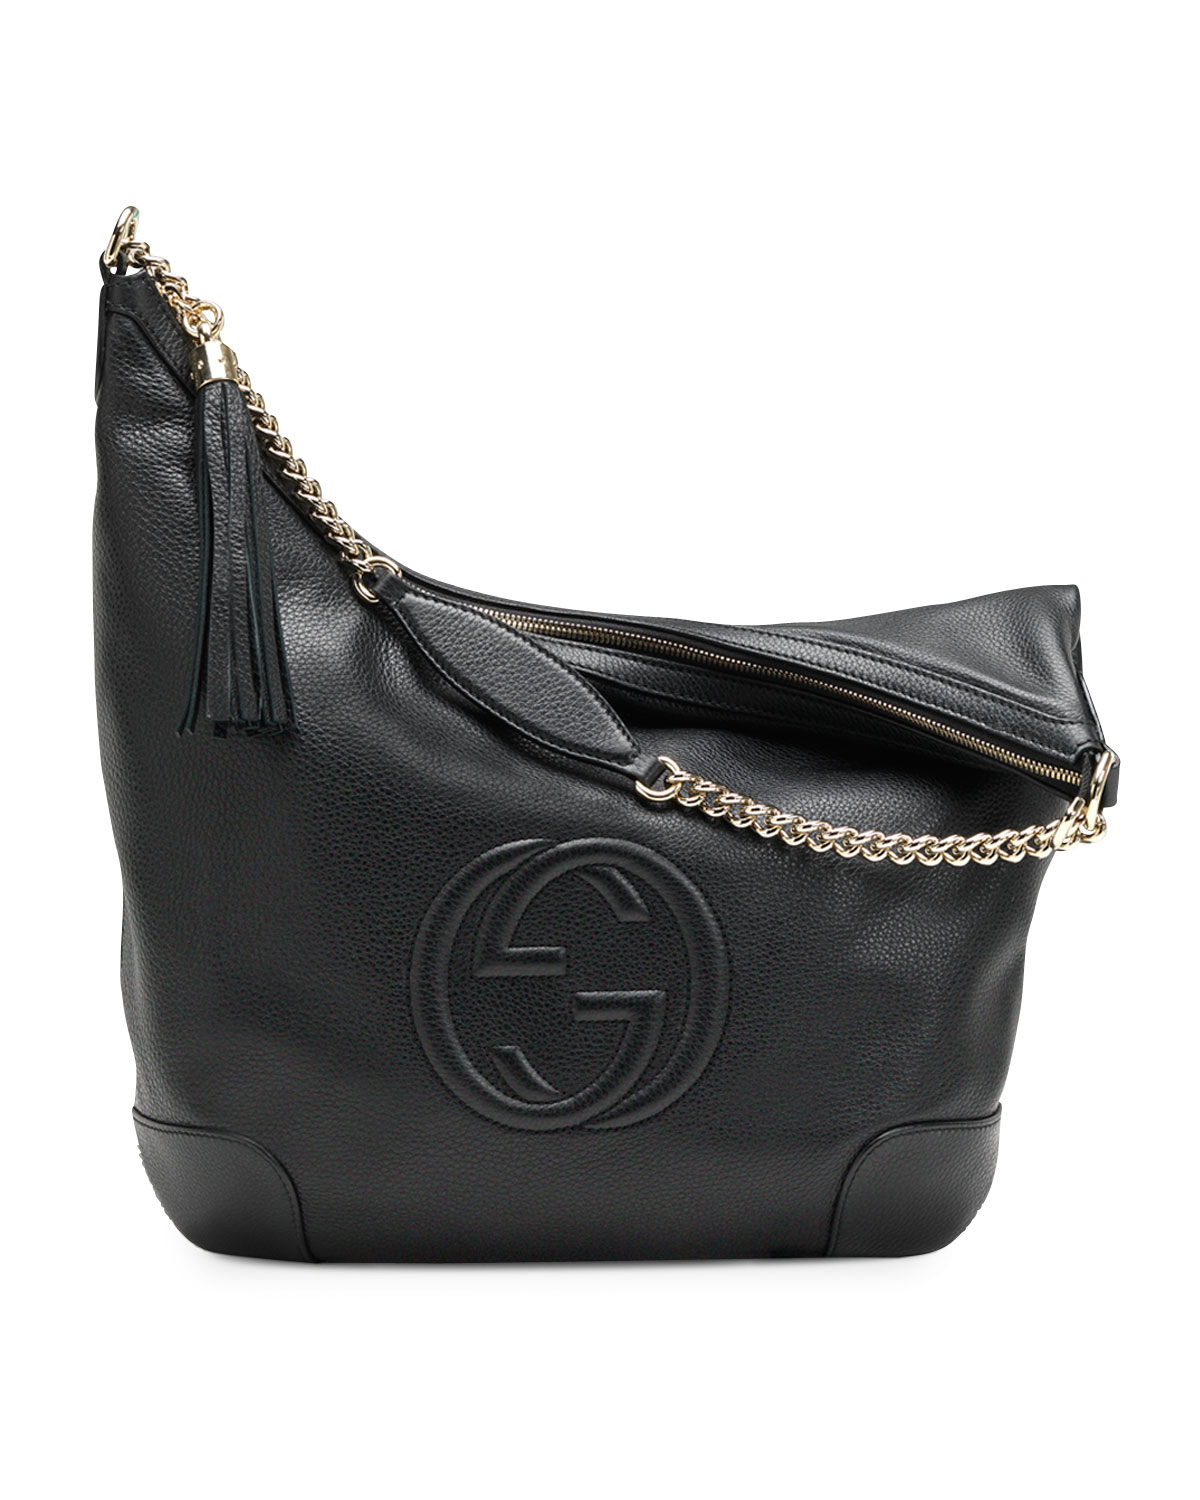 4e18663791af Gucci Soho Gg Leather Cross-body Bag in Black - Lyst